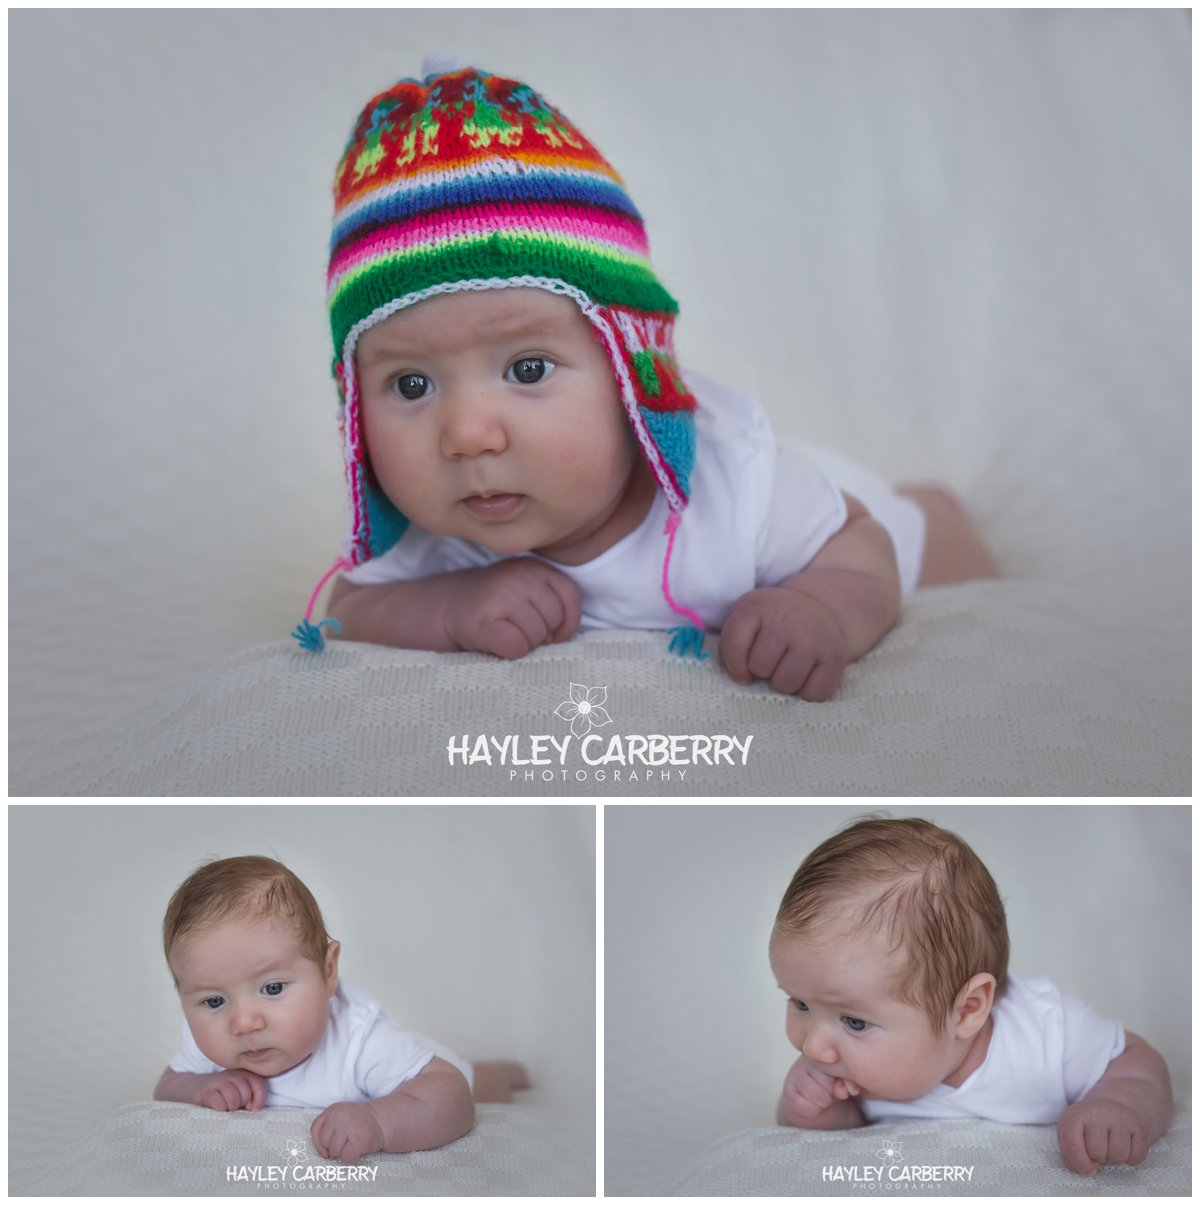 Canberra Newborn Cake Smash Babies Children Studio Portrait Photographer